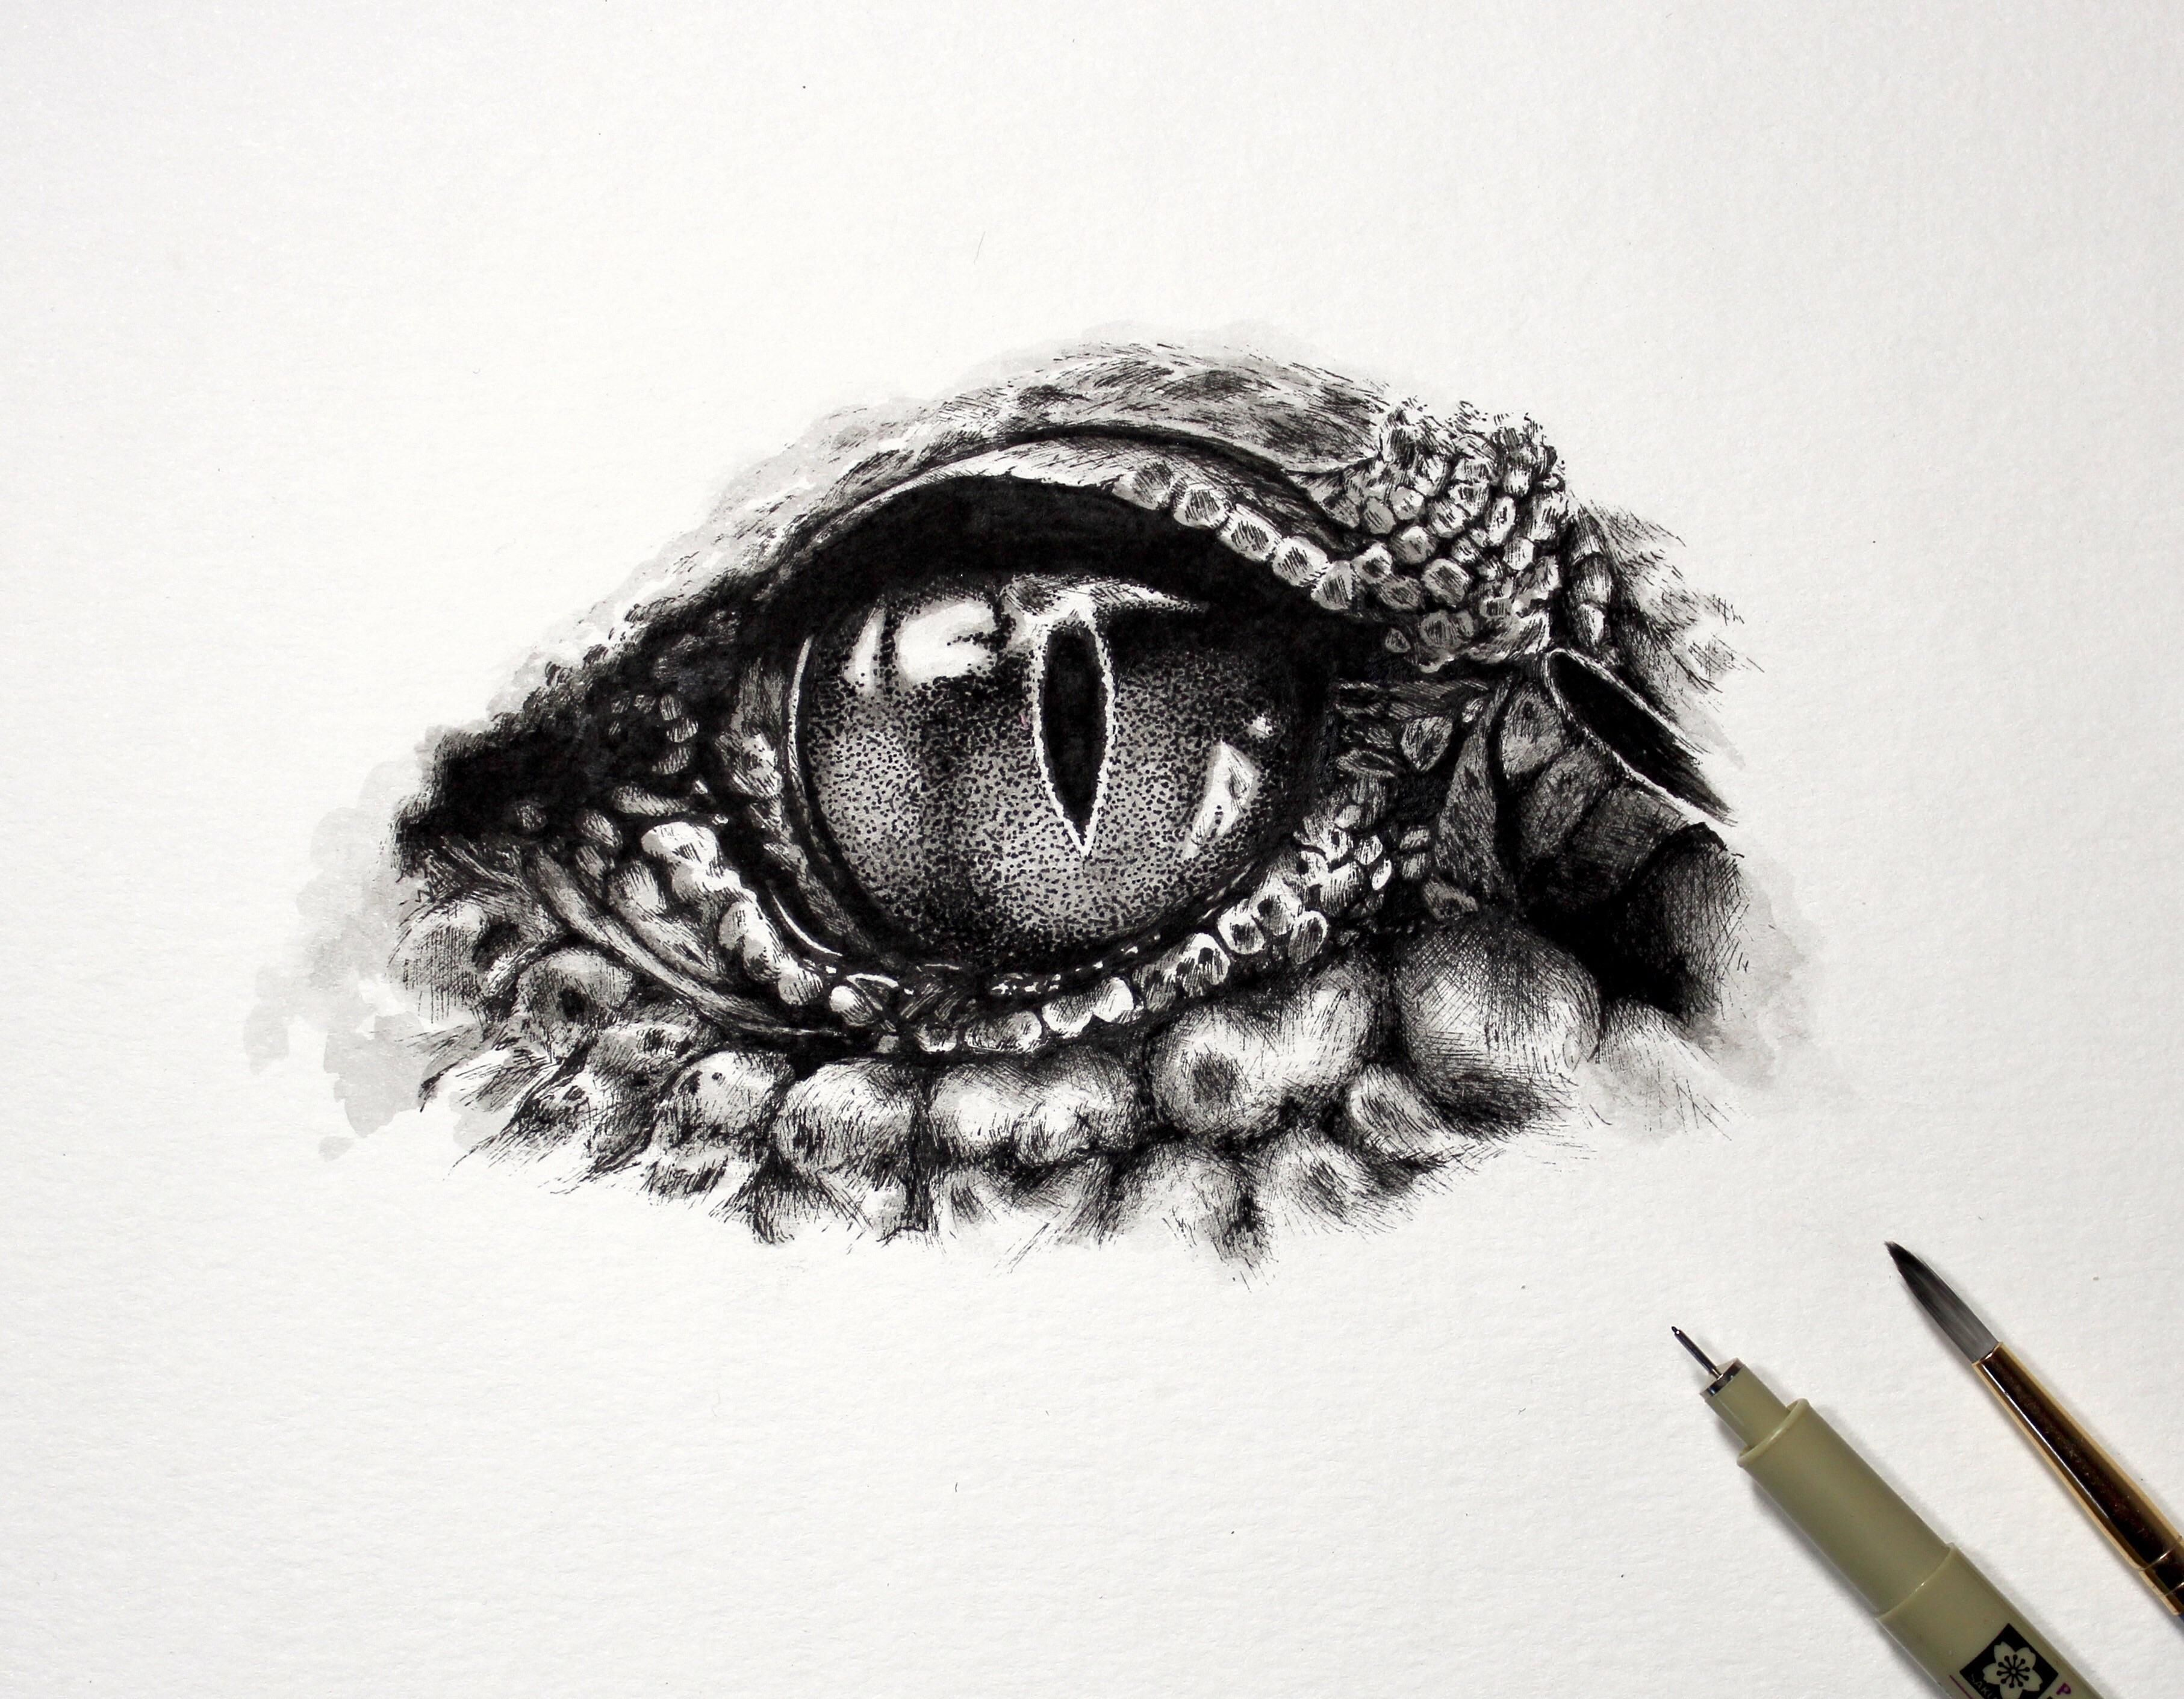 Crocodile Eye With 005 Micron Pen And Watercolor For Neutrals